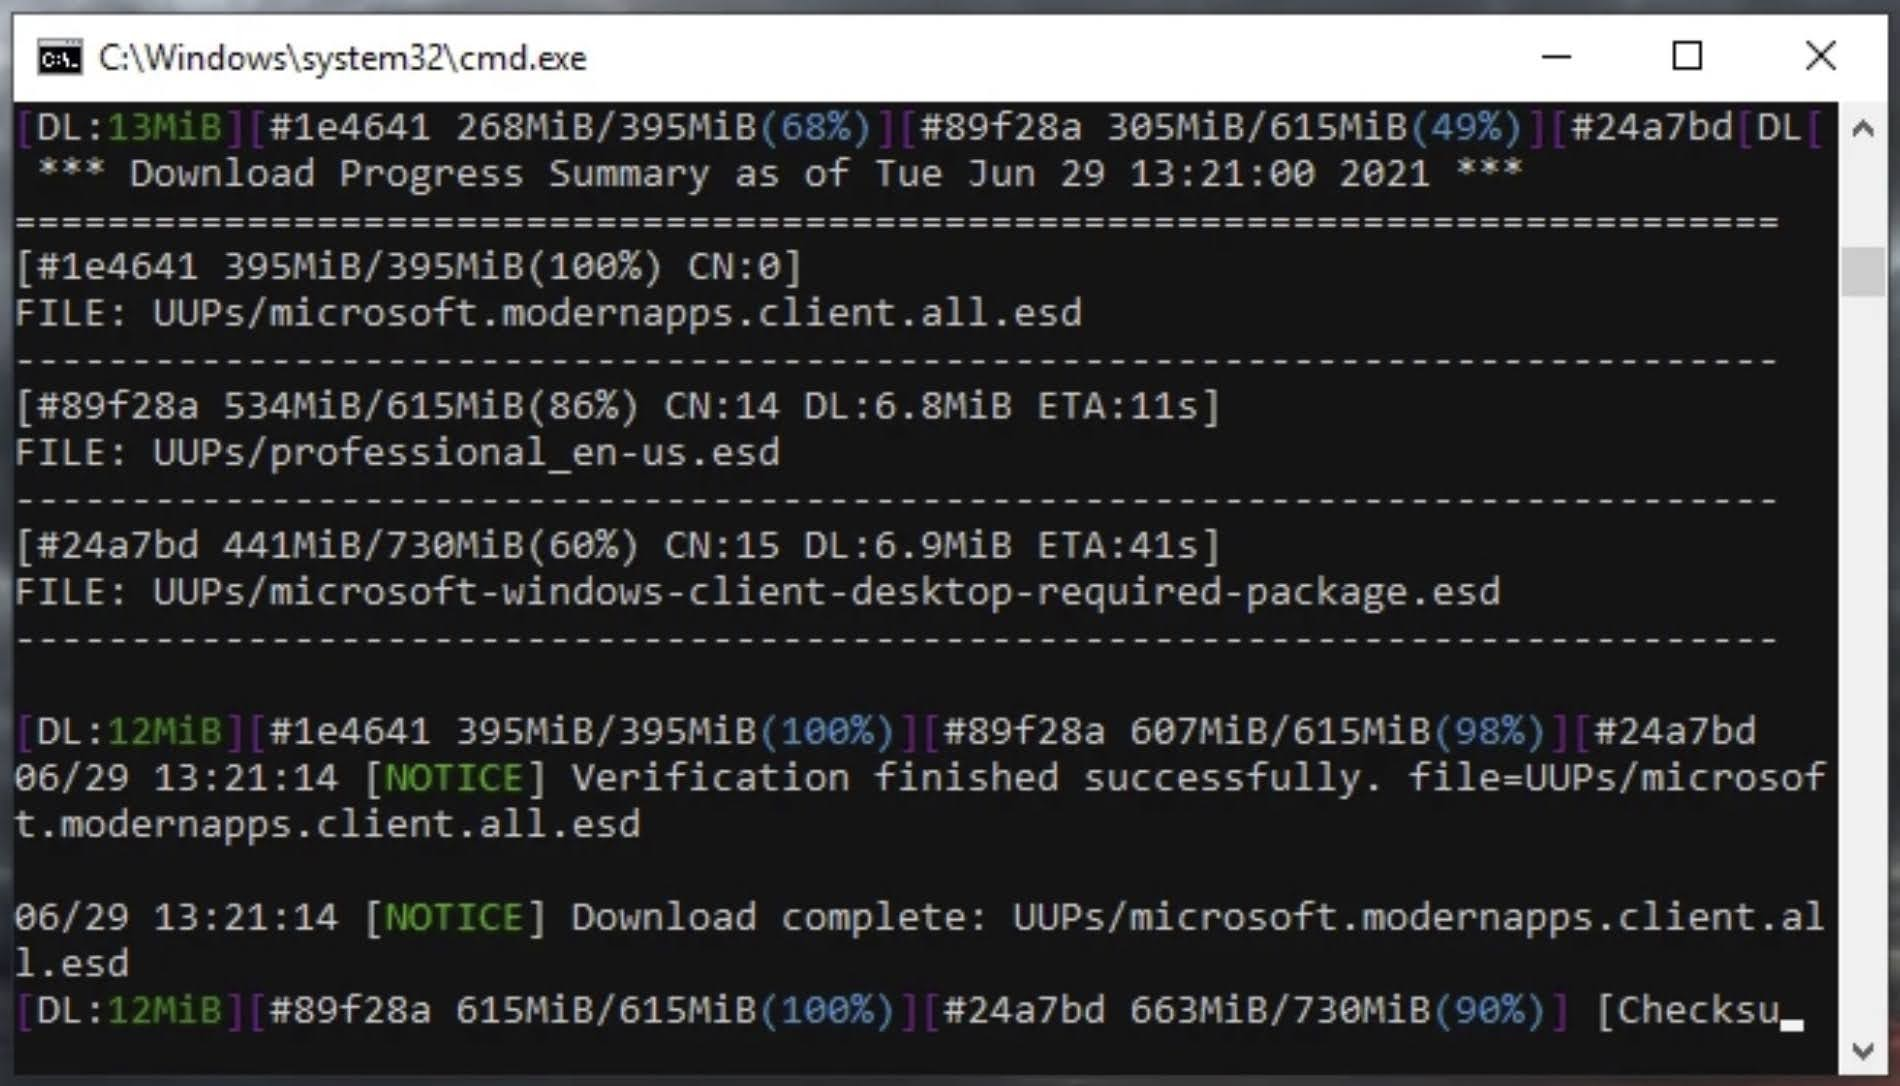 Command Prompt window will open and start to download Windows 11 Insider Preview.